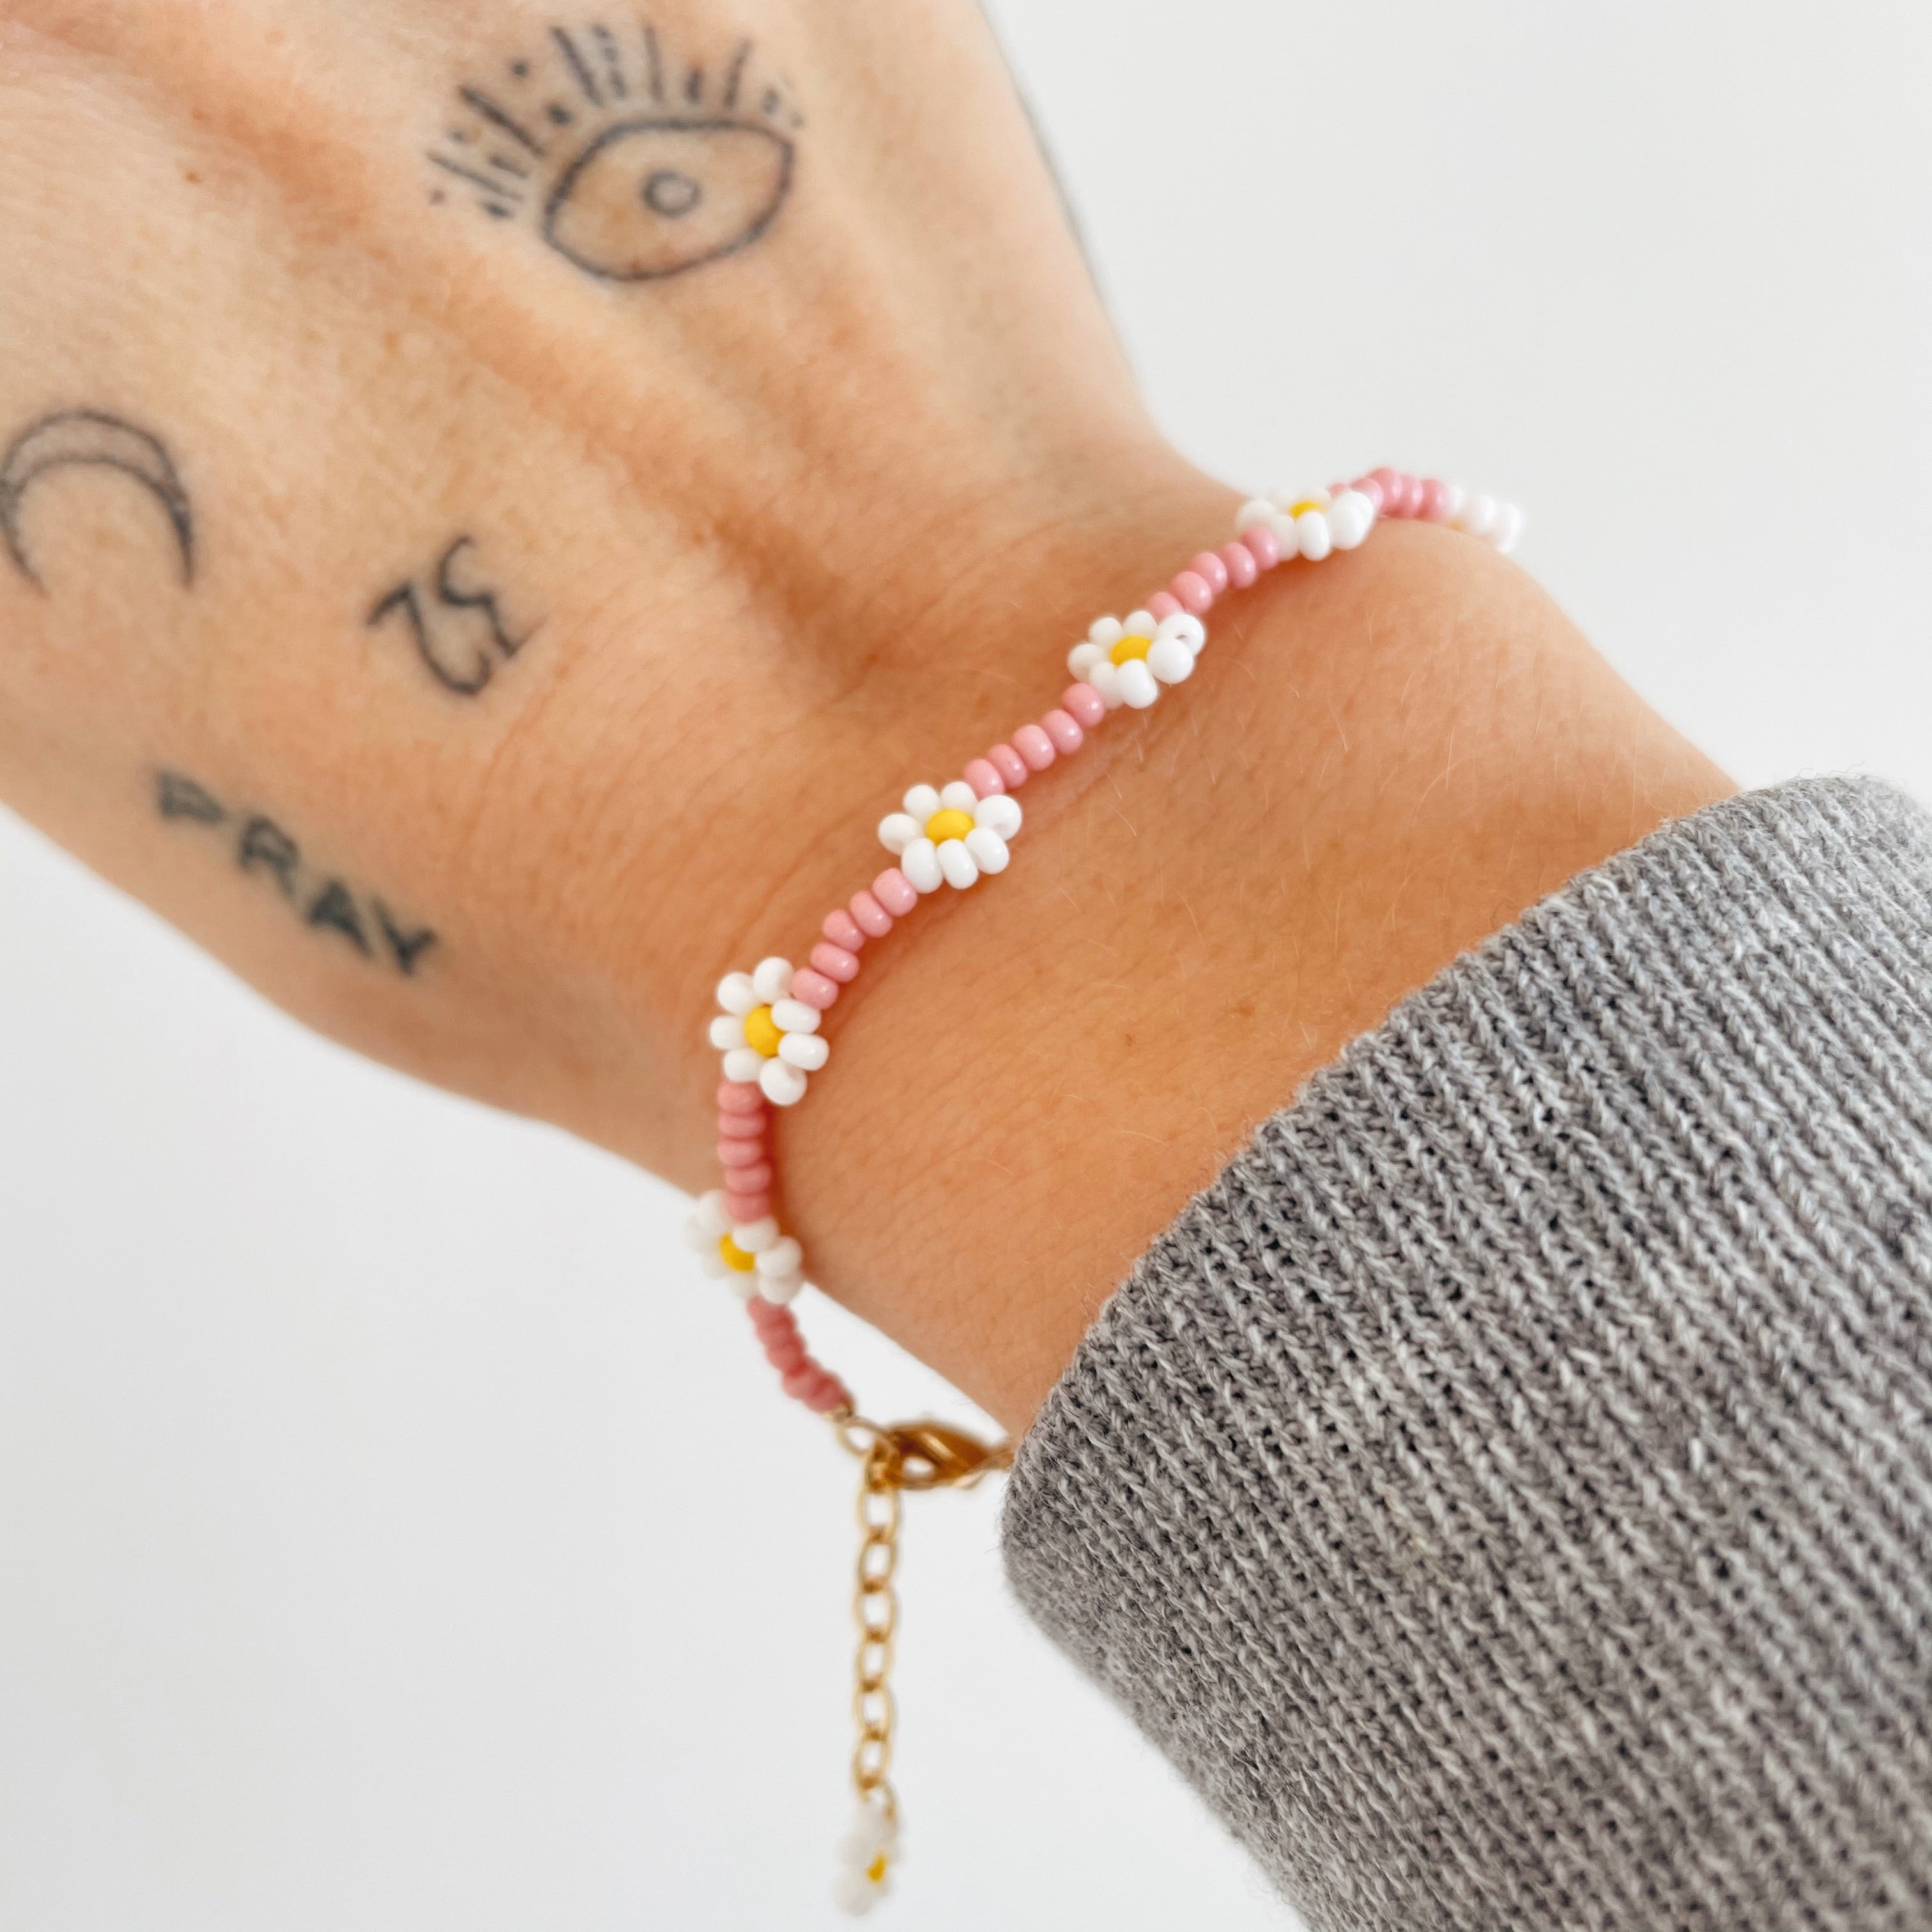 "For the 90's girl that's grown up! The Classic Daisy is a staple but elevated! Made with colorful beads and 18K gold plated details.  This set looks great all year round, whether it's with a chunky knit or at the beach. It's just perfect!  The bracelet is adjustable between 6"" and 7""  The necklace is adjustable between 14"" and 16""  The ring is made with stretchy material and is one size fits most."